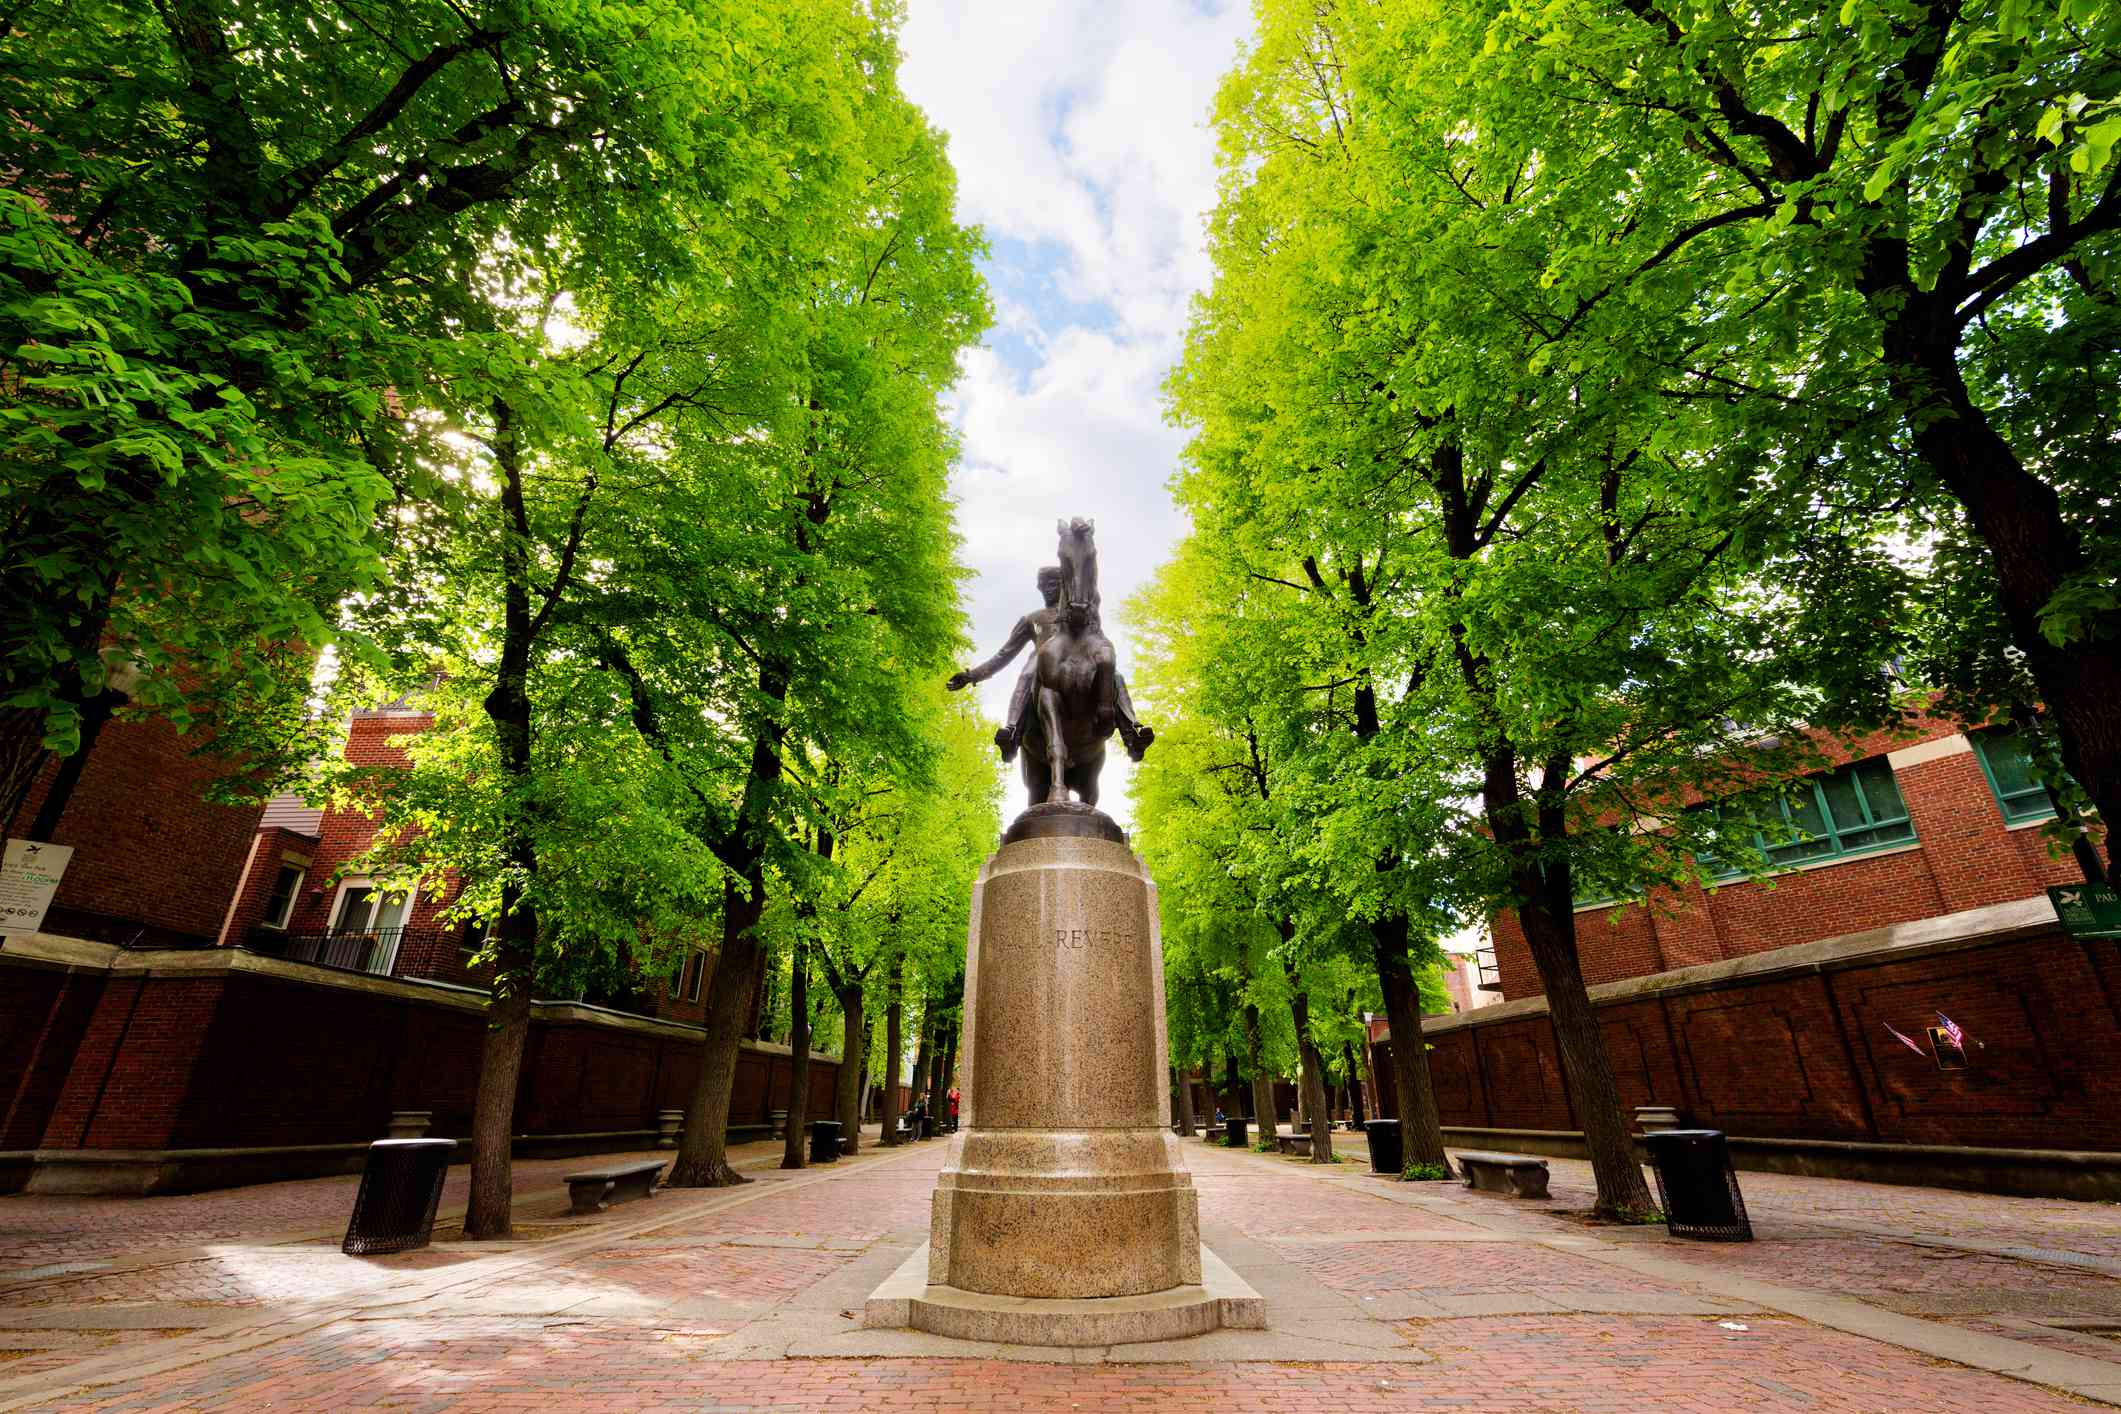 Statue of Paul Revere on horse in center of Paul Revere Mall leading to Old North Church along Freedom Trail, Boston, Massachusetts